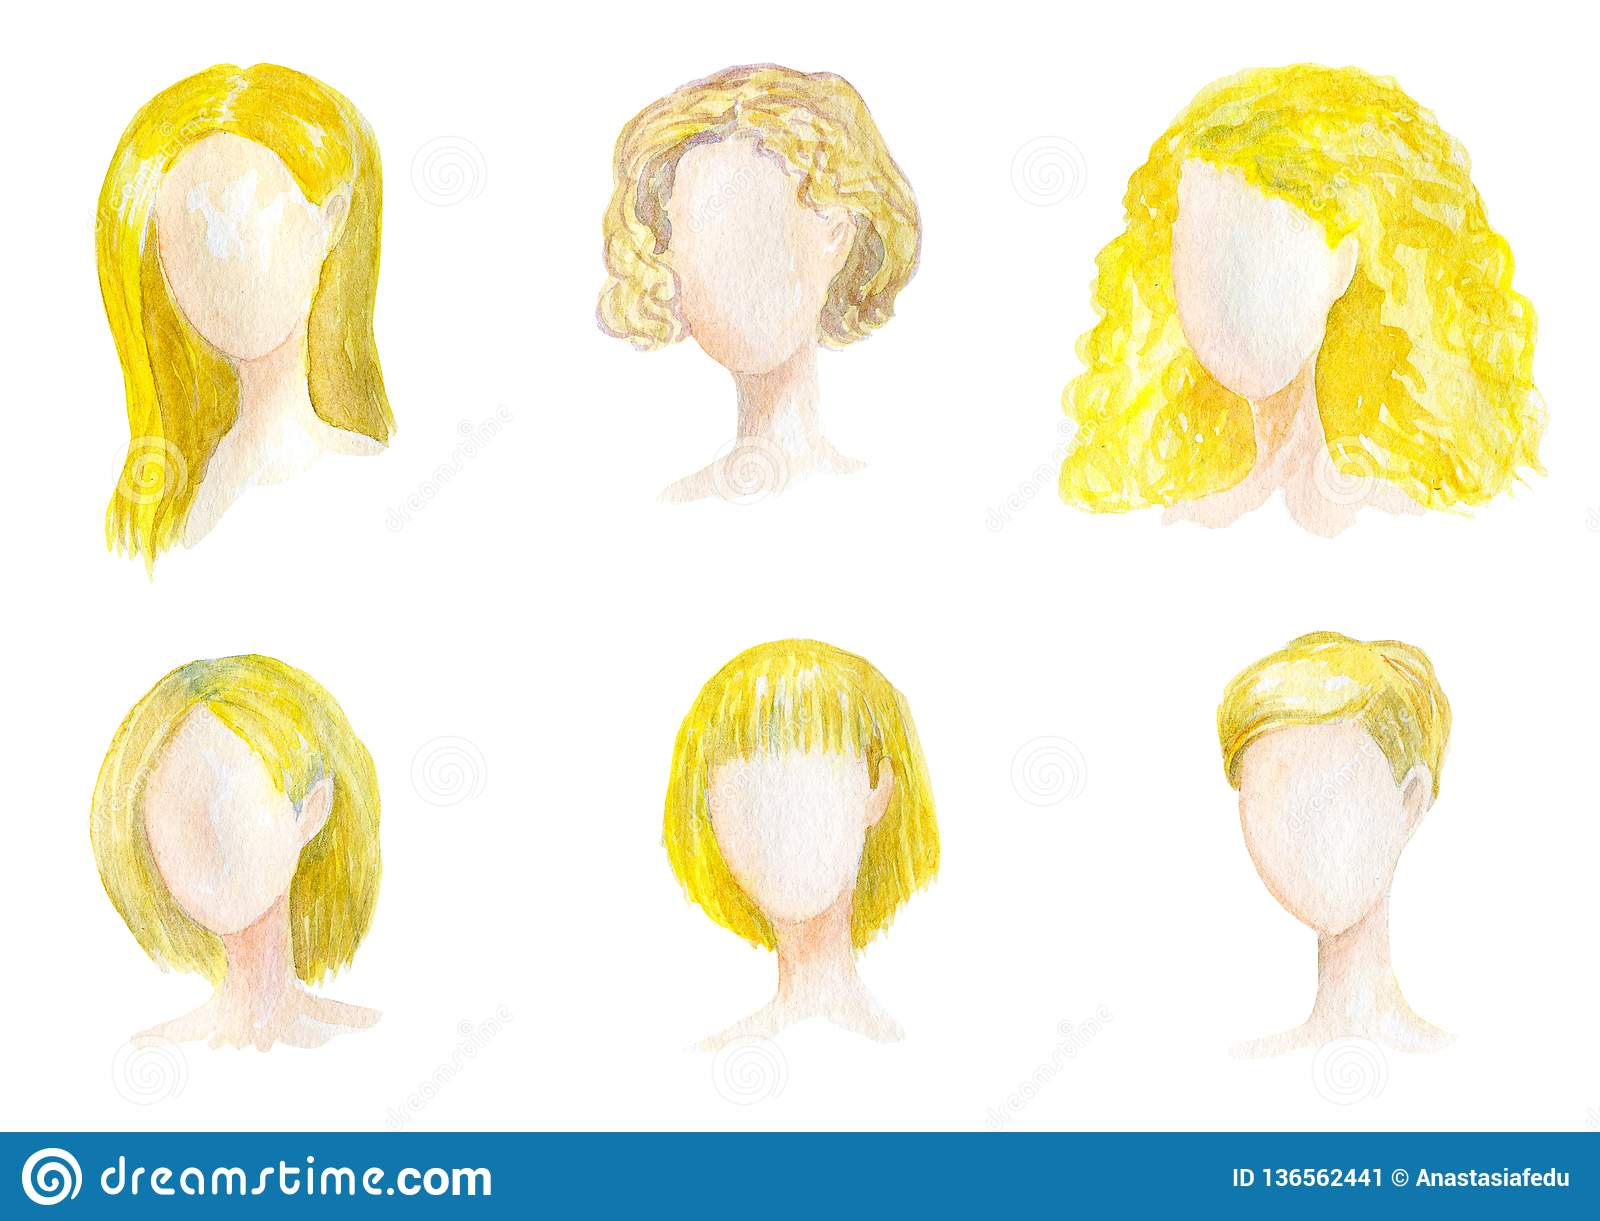 d87dfc3fc Watercolor hand drawn set with different types of female hairstyles for  long,curly,chort hair. Women blonde haircut illustration on white  background to use ...